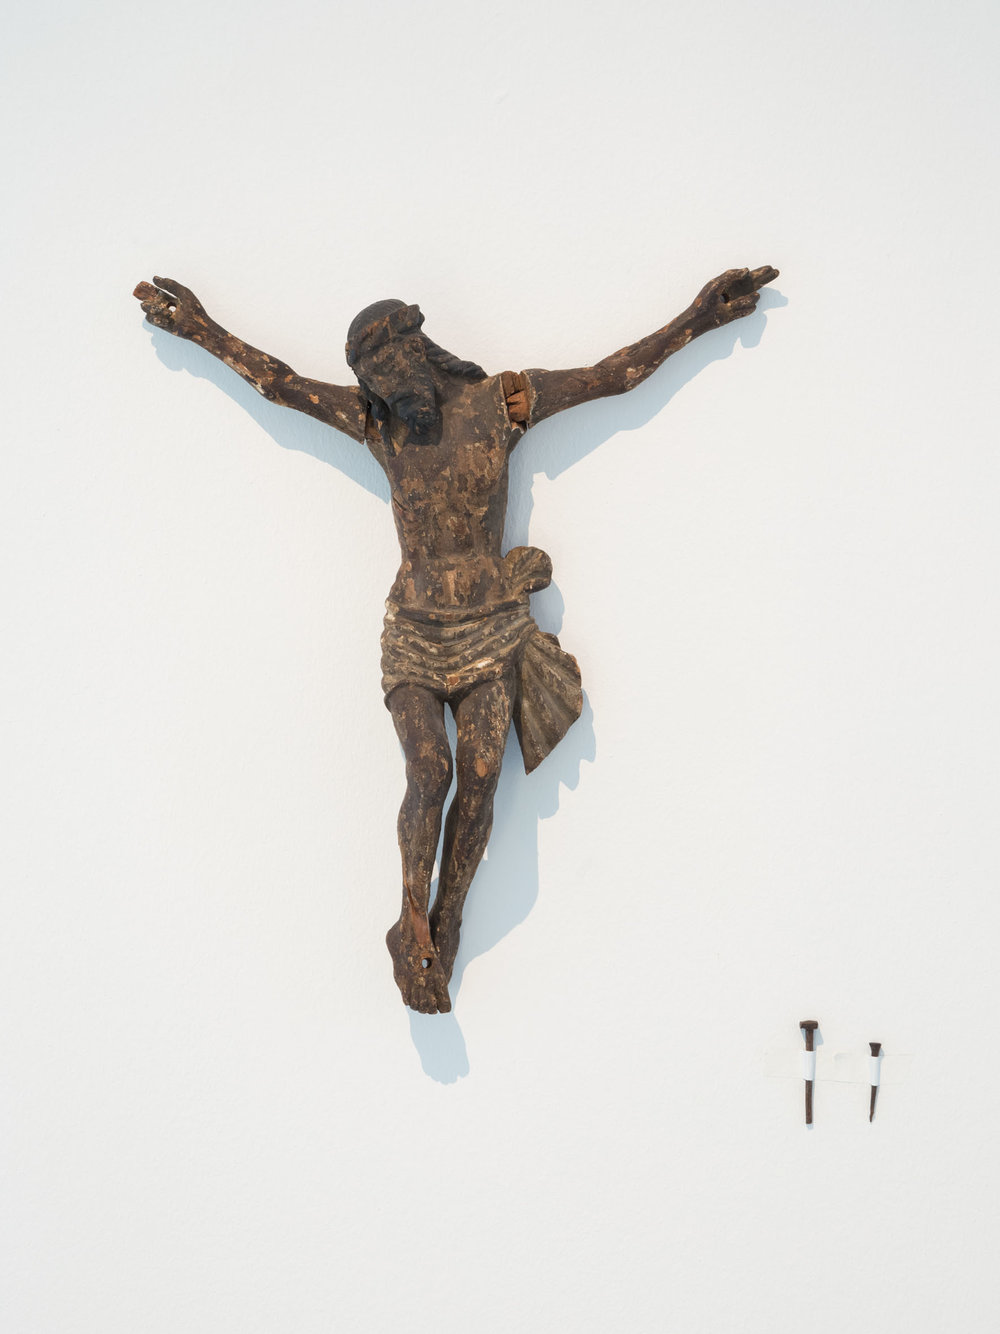 Ein Nagel tut's auch , 2015  Wood, 2 nails  Jesus:  47 × 42 × 9,5 cm (18 ½ × 16 ½ × 3 ¾ inches)  Nail 1: 6,5 cm   Nail 2: 5 cm   Unique